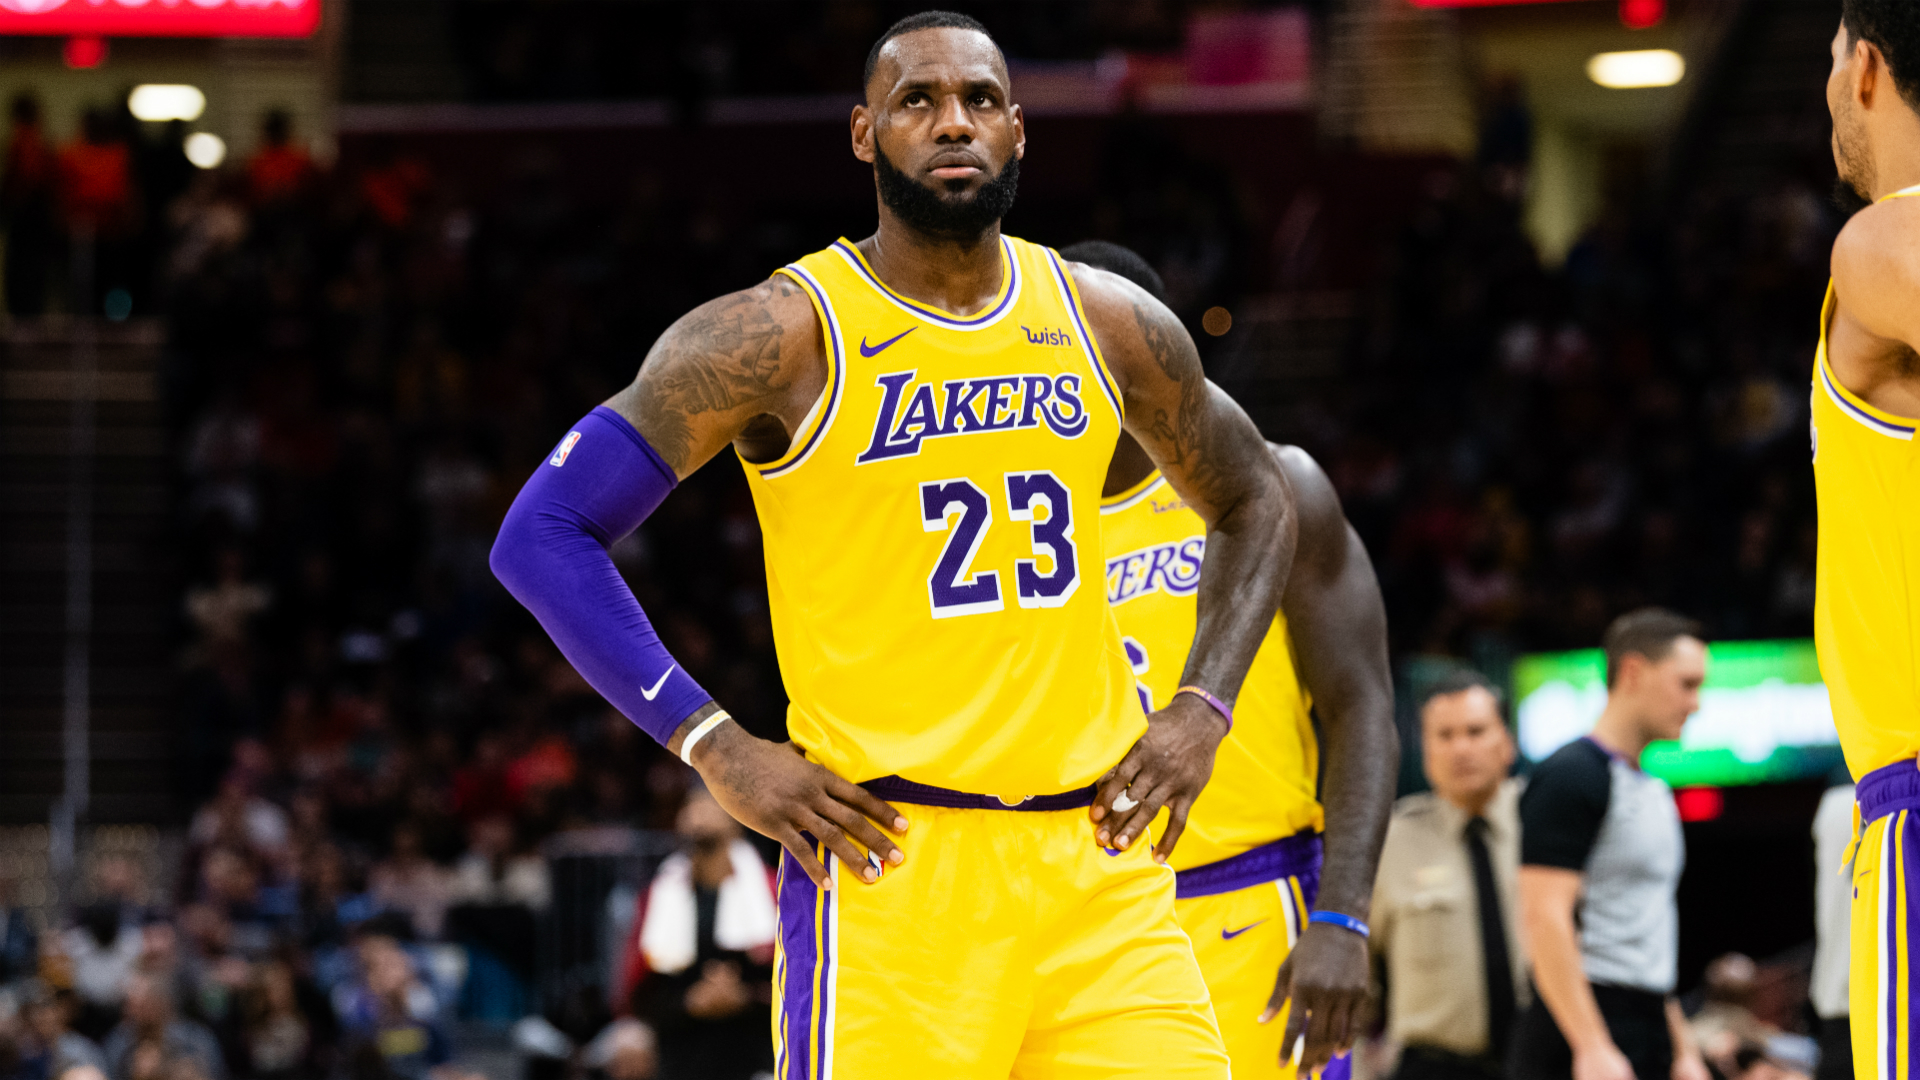 Steve Kerr disappointed for LeBron